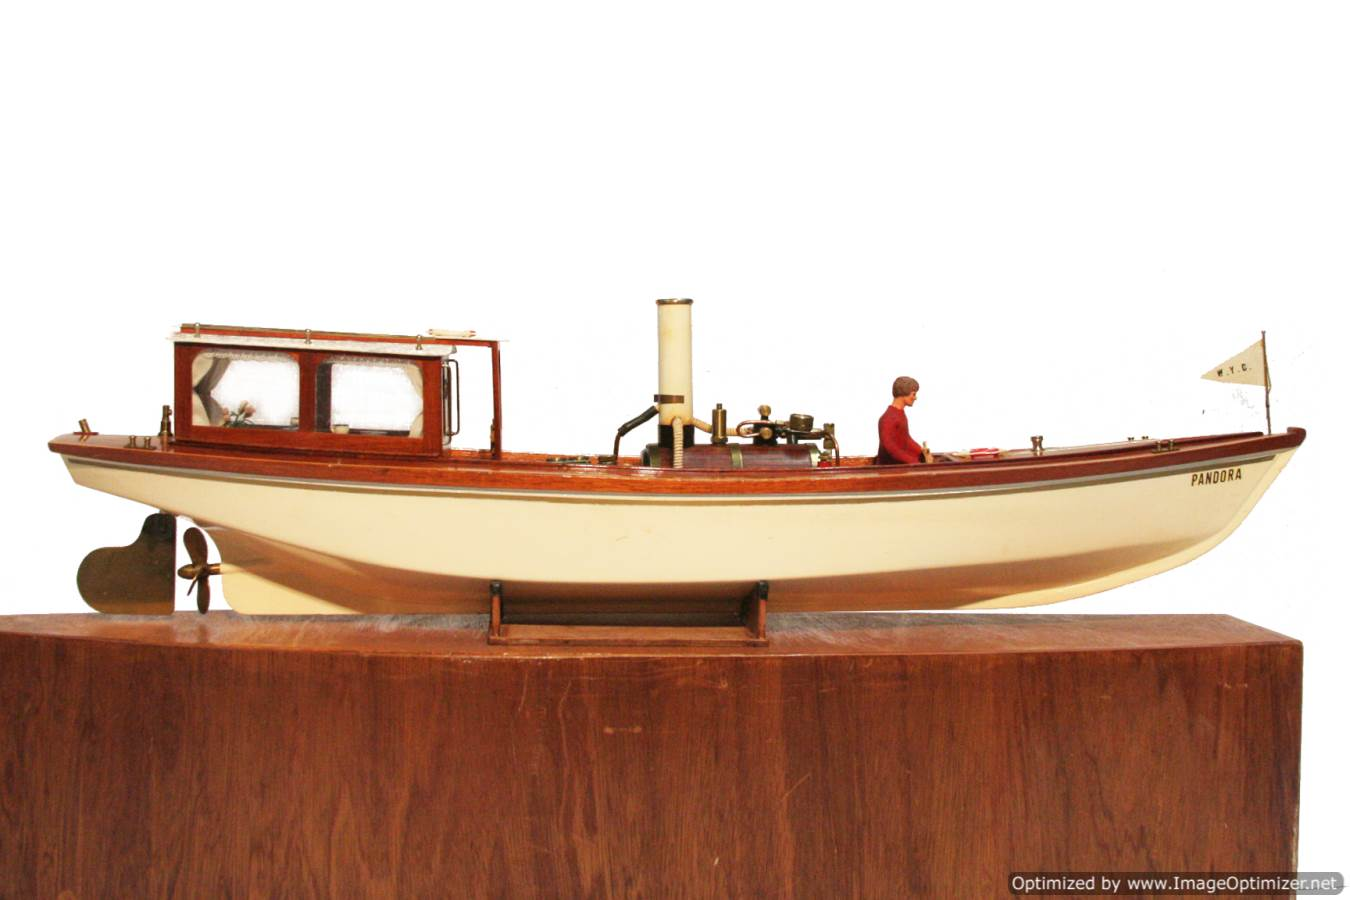 test Scale model Windermere steam launch Pandora for sale 23-Optimized